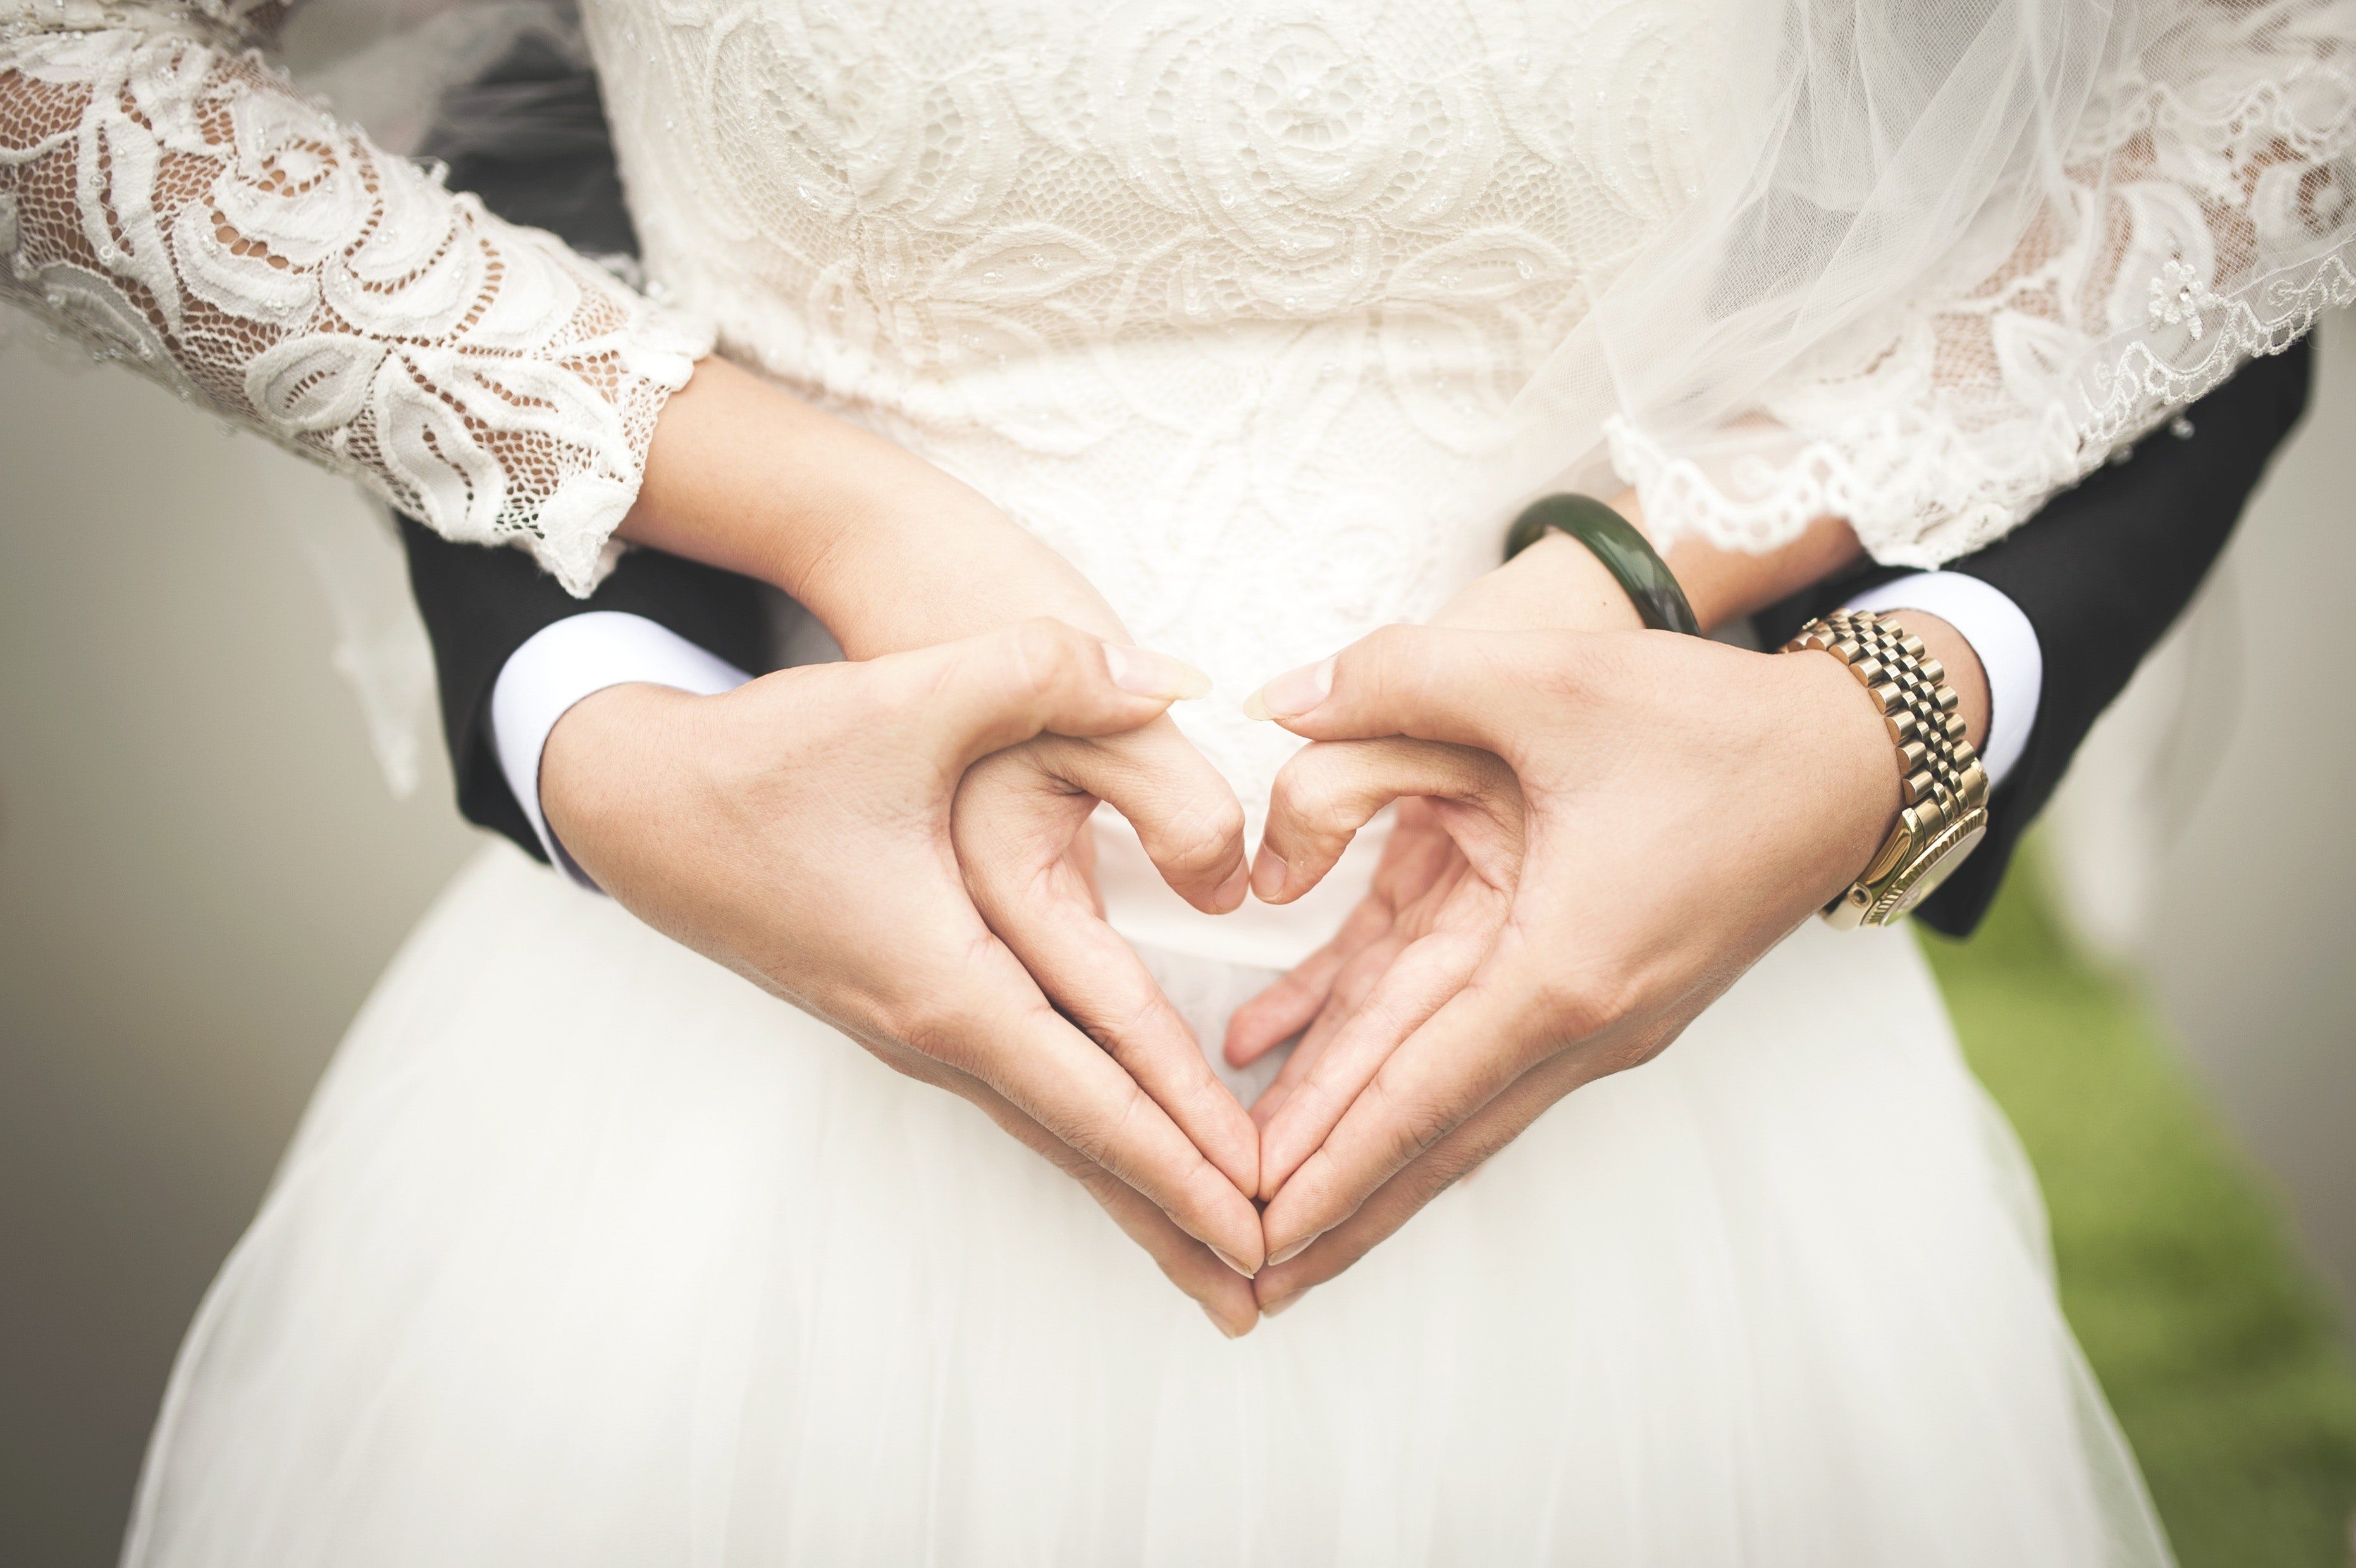 Where Did These Wedding Traditions Come From?